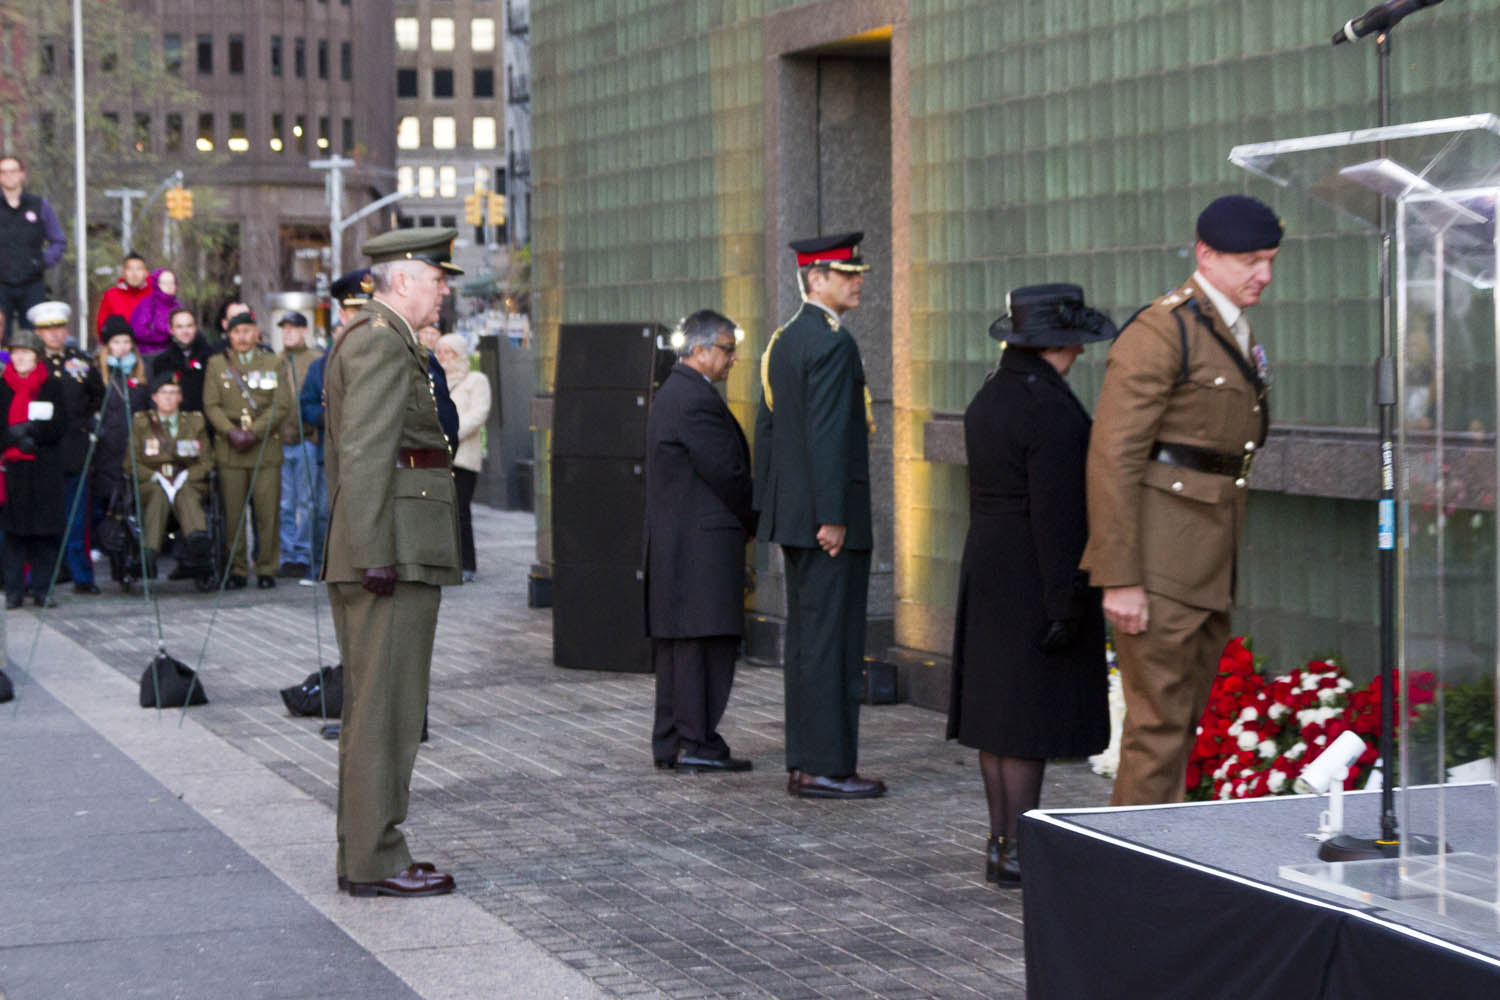 Col. Conor Fitzsimmons, representing the Irish Defence Forces who accompanied  the Consul General to the Anzac commemoration.